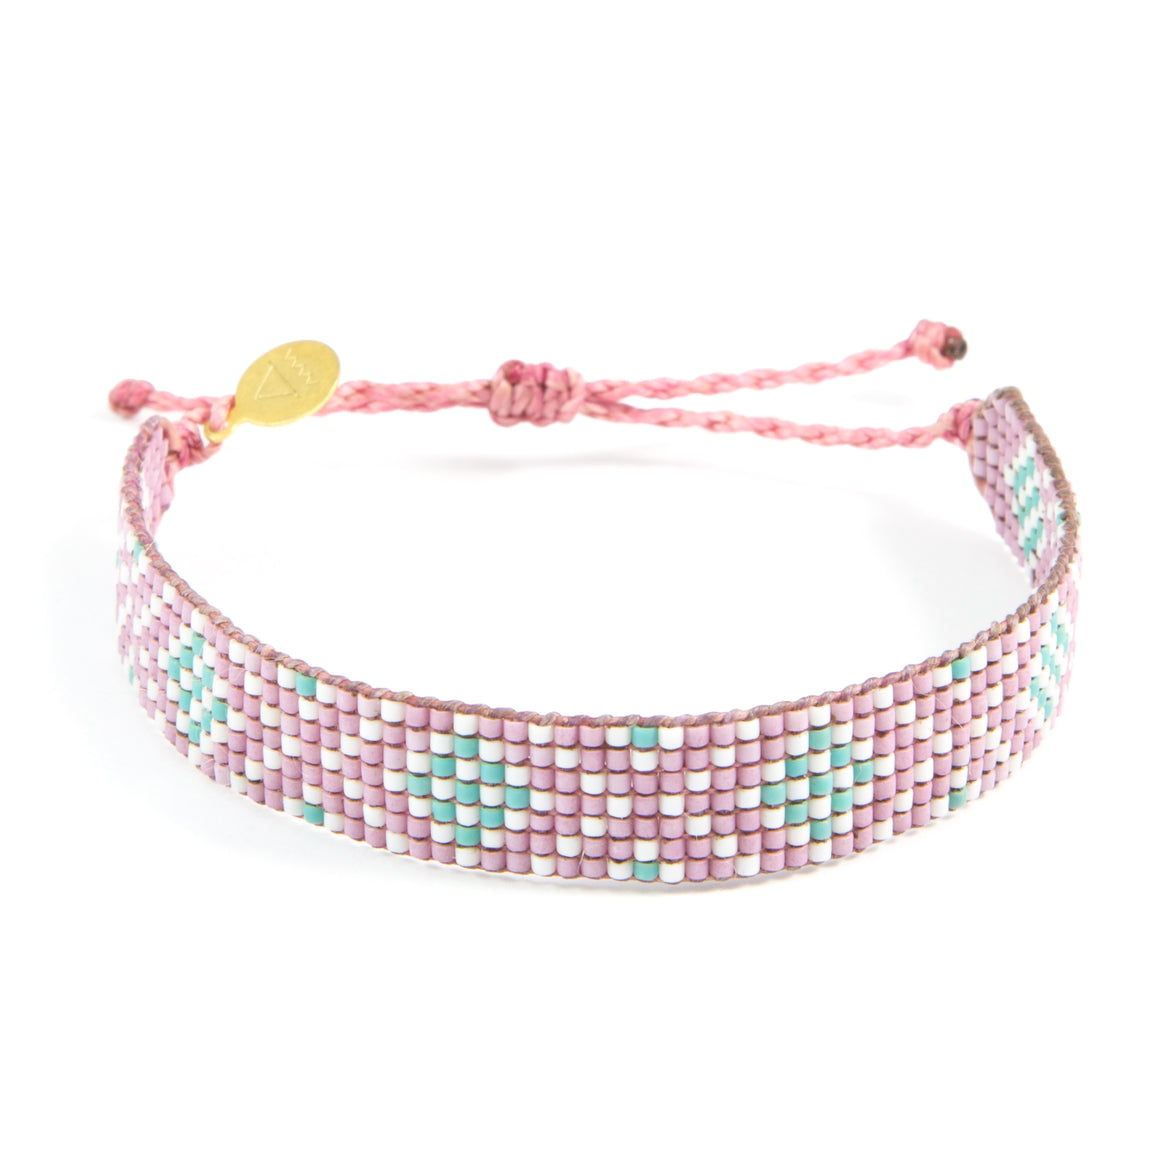 Plum Diamond Pattern Woven Bracelet